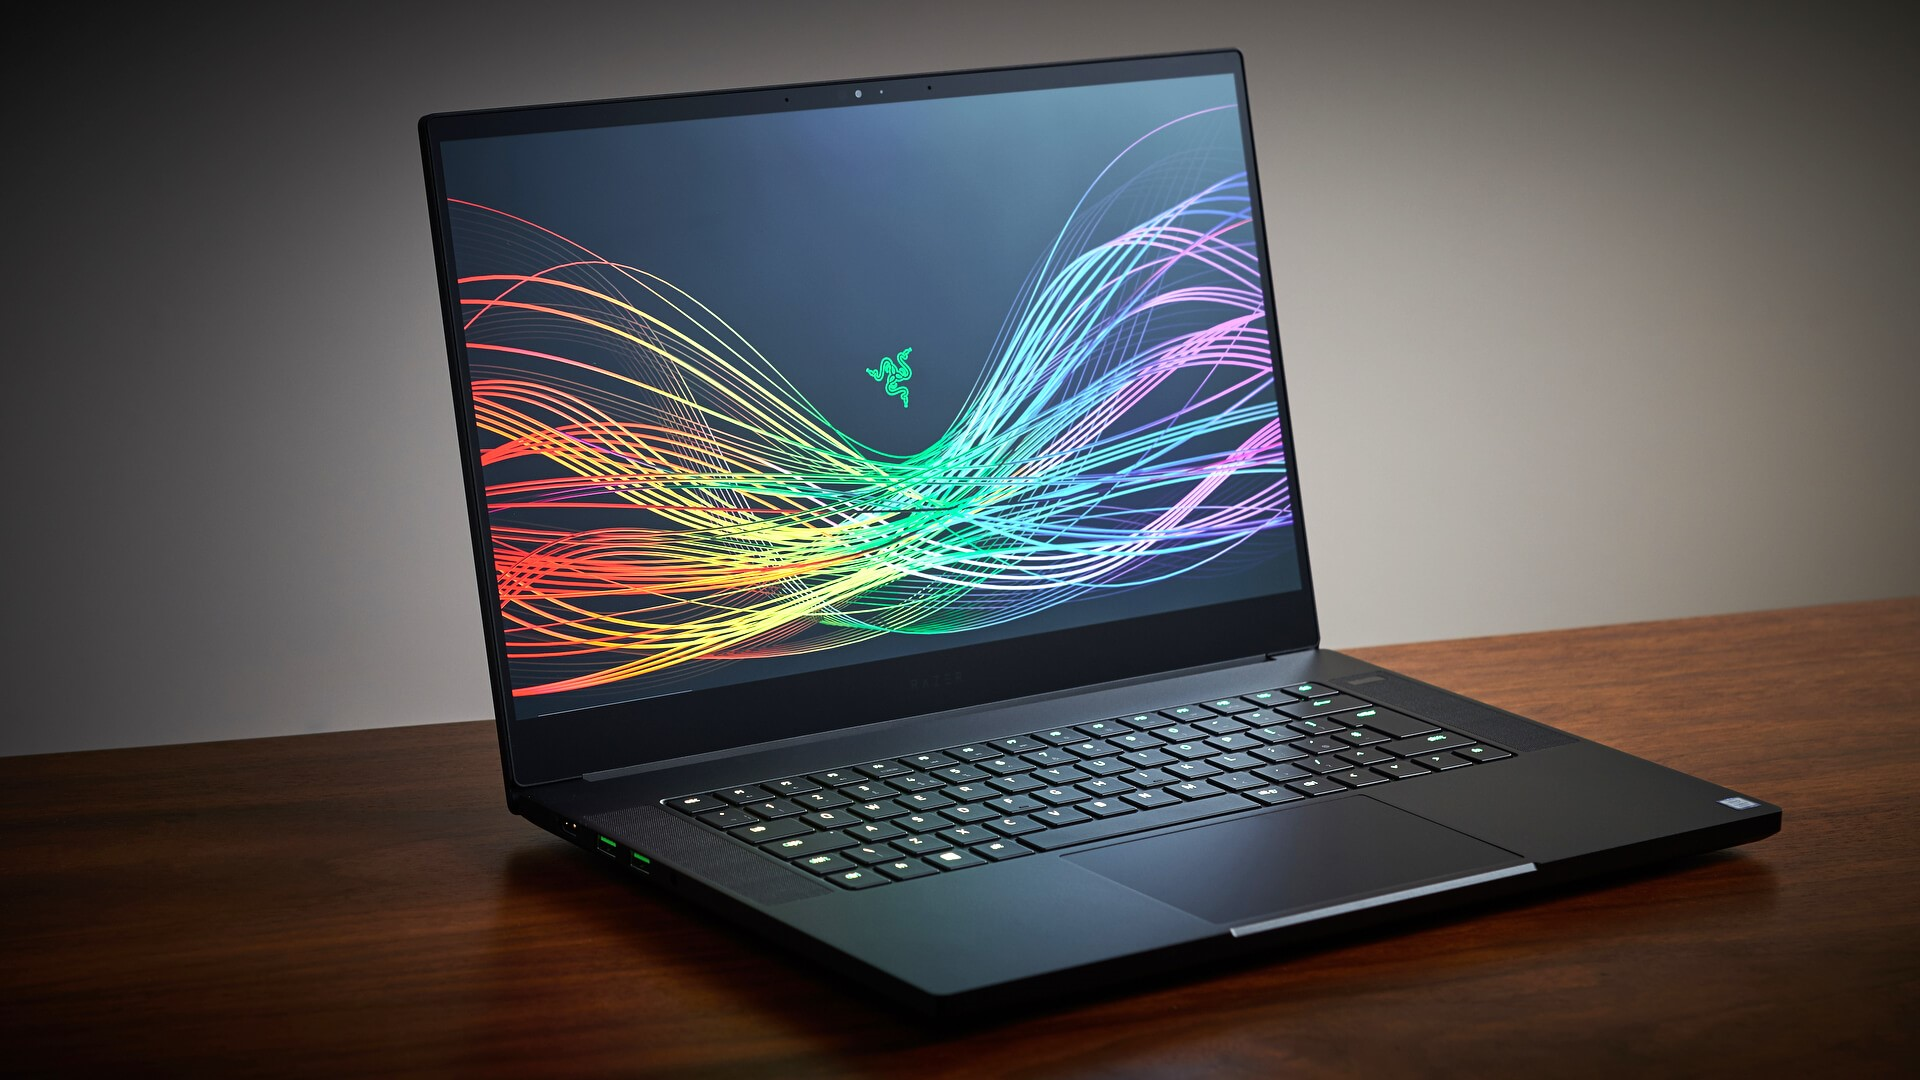 Best Laptop for Gaming And Cad